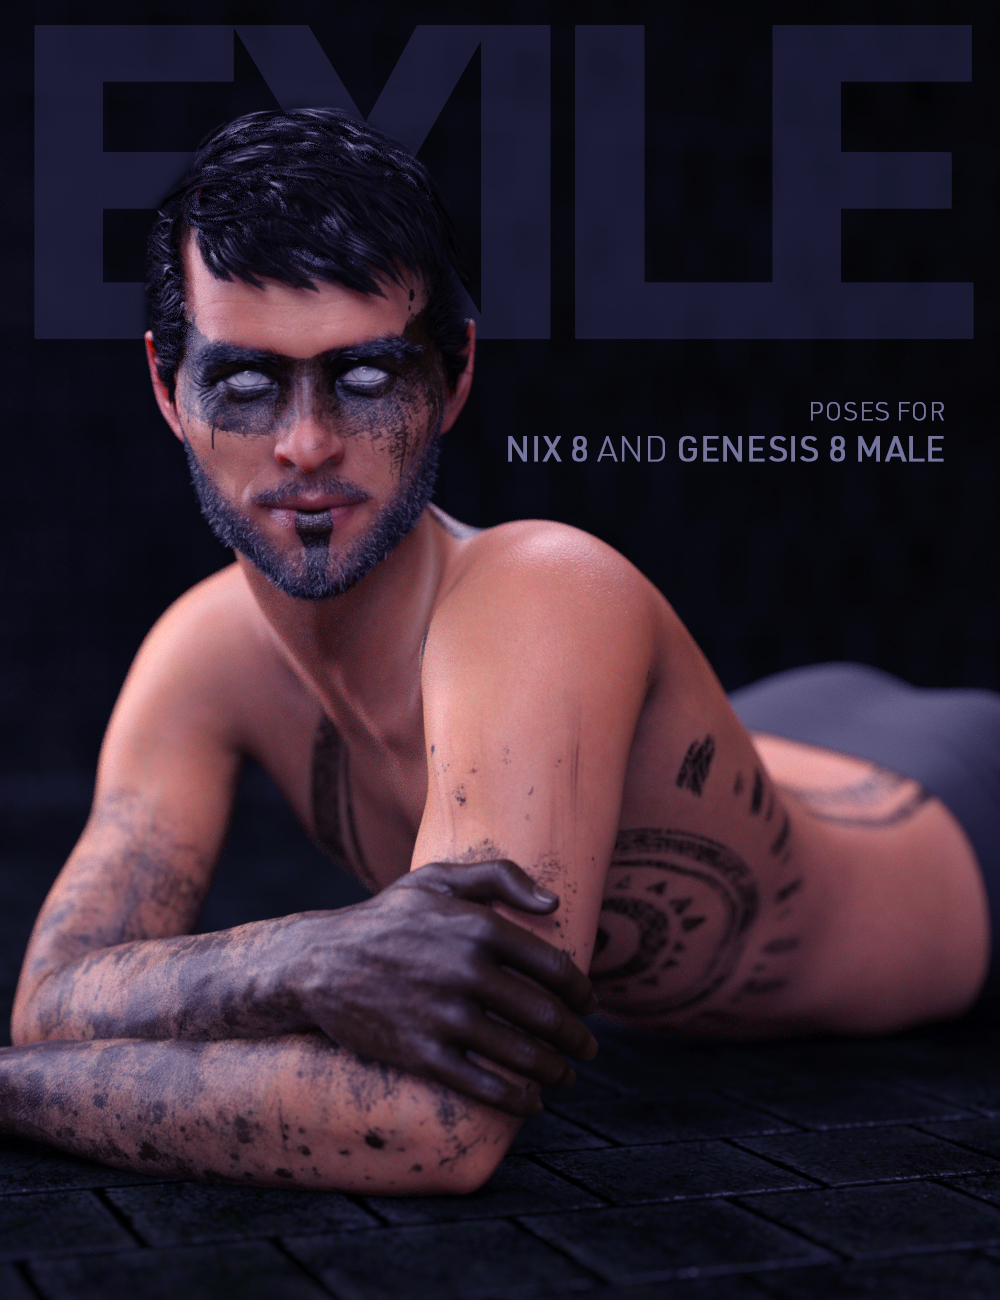 Exile Poses for Nix 8 and Genesis 8 Male by: Shimuzu, 3D Models by Daz 3D